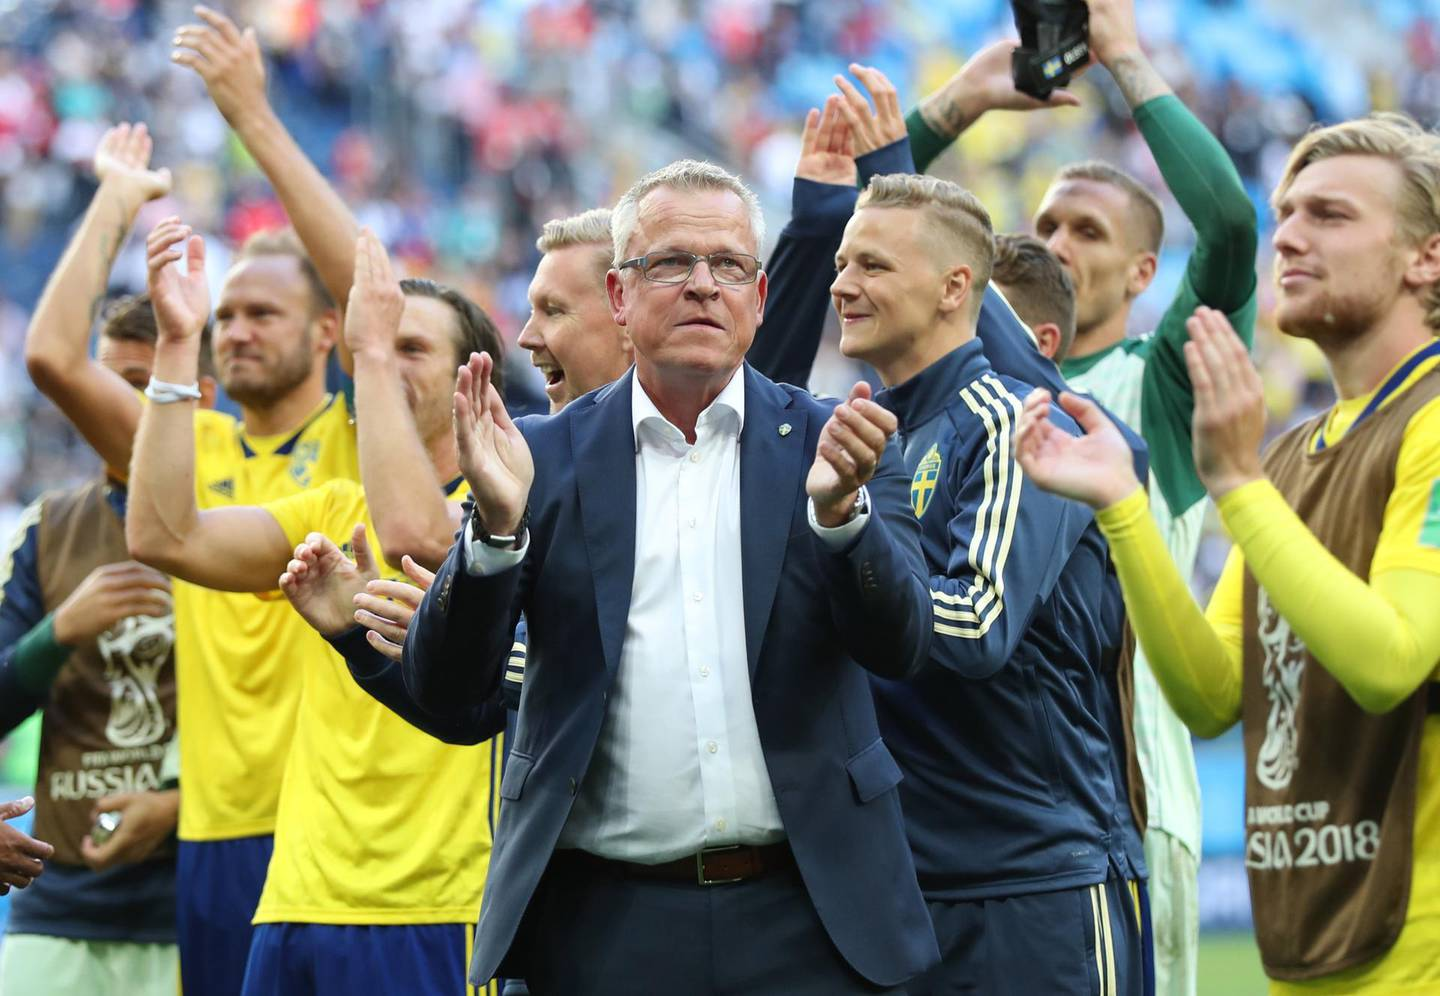 epa06861413 Sweden's coach Janne Andersson (C) celebrates after the FIFA World Cup 2018 round of 16 soccer match between Sweden and Switzerland in St.Petersburg, Russia, 03 July 2018. Sweden won the match 1-0.  (RESTRICTIONS APPLY: Editorial Use Only, not used in association with any commercial entity - Images must not be used in any form of alert service or push service of any kind including via mobile alert services, downloads to mobile devices or MMS messaging - Images must appear as still images and must not emulate match action video footage - No alteration is made to, and no text or image is superimposed over, any published image which: (a) intentionally obscures or removes a sponsor identification image; or (b) adds or overlays the commercial identification of any third party which is not officially associated with the FIFA World Cup)  EPA/TOLGA BOZOGLU   EDITORIAL USE ONLY